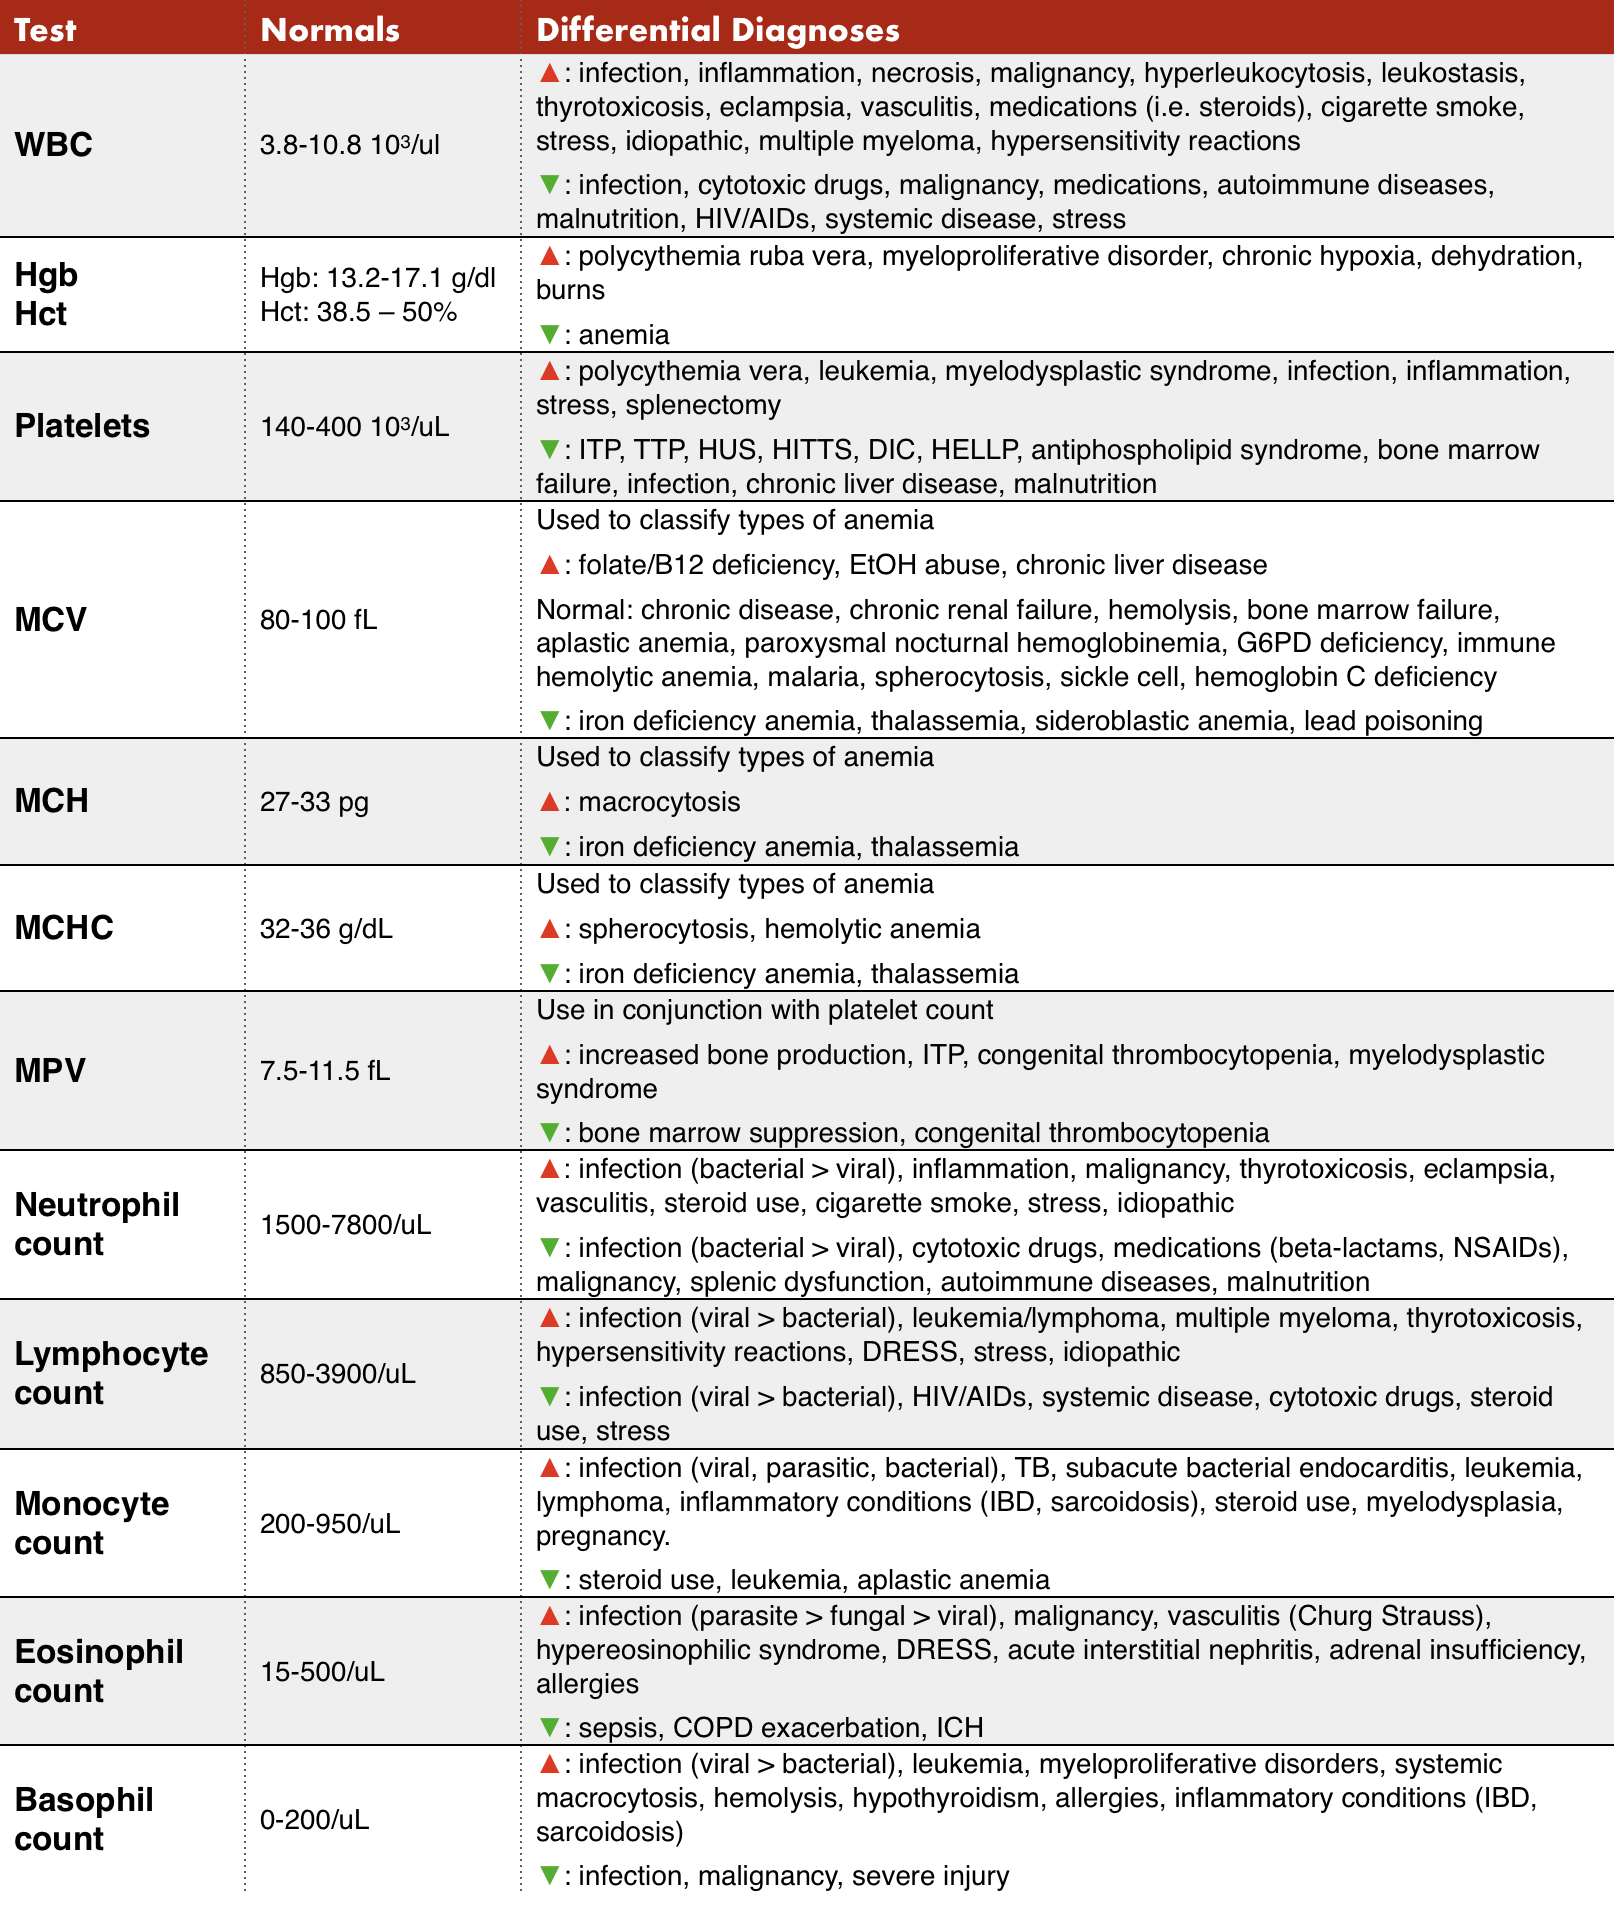 Table 1  - The components of the CBC and differential diagnoses for abnormalities.( 2 , 3,  4 , 5 )